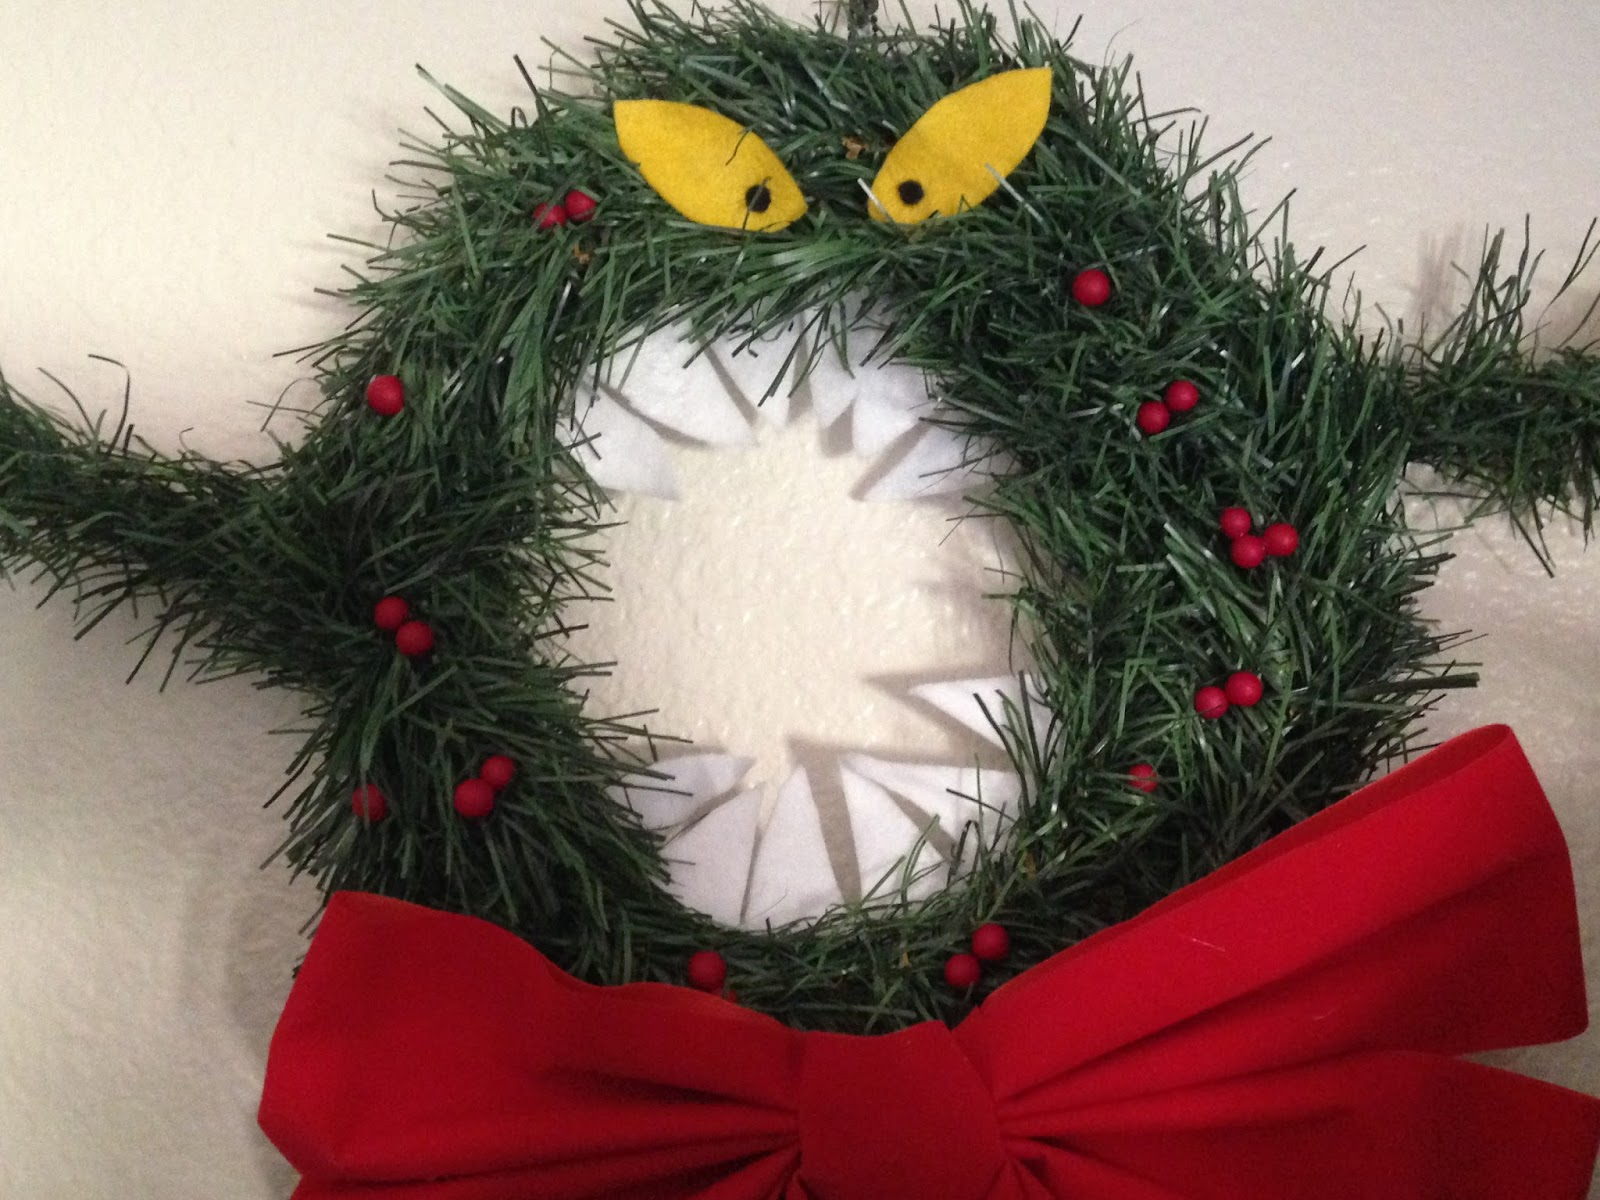 Adventures in DIY Nightmare Before Christmas Man Eating Wreath